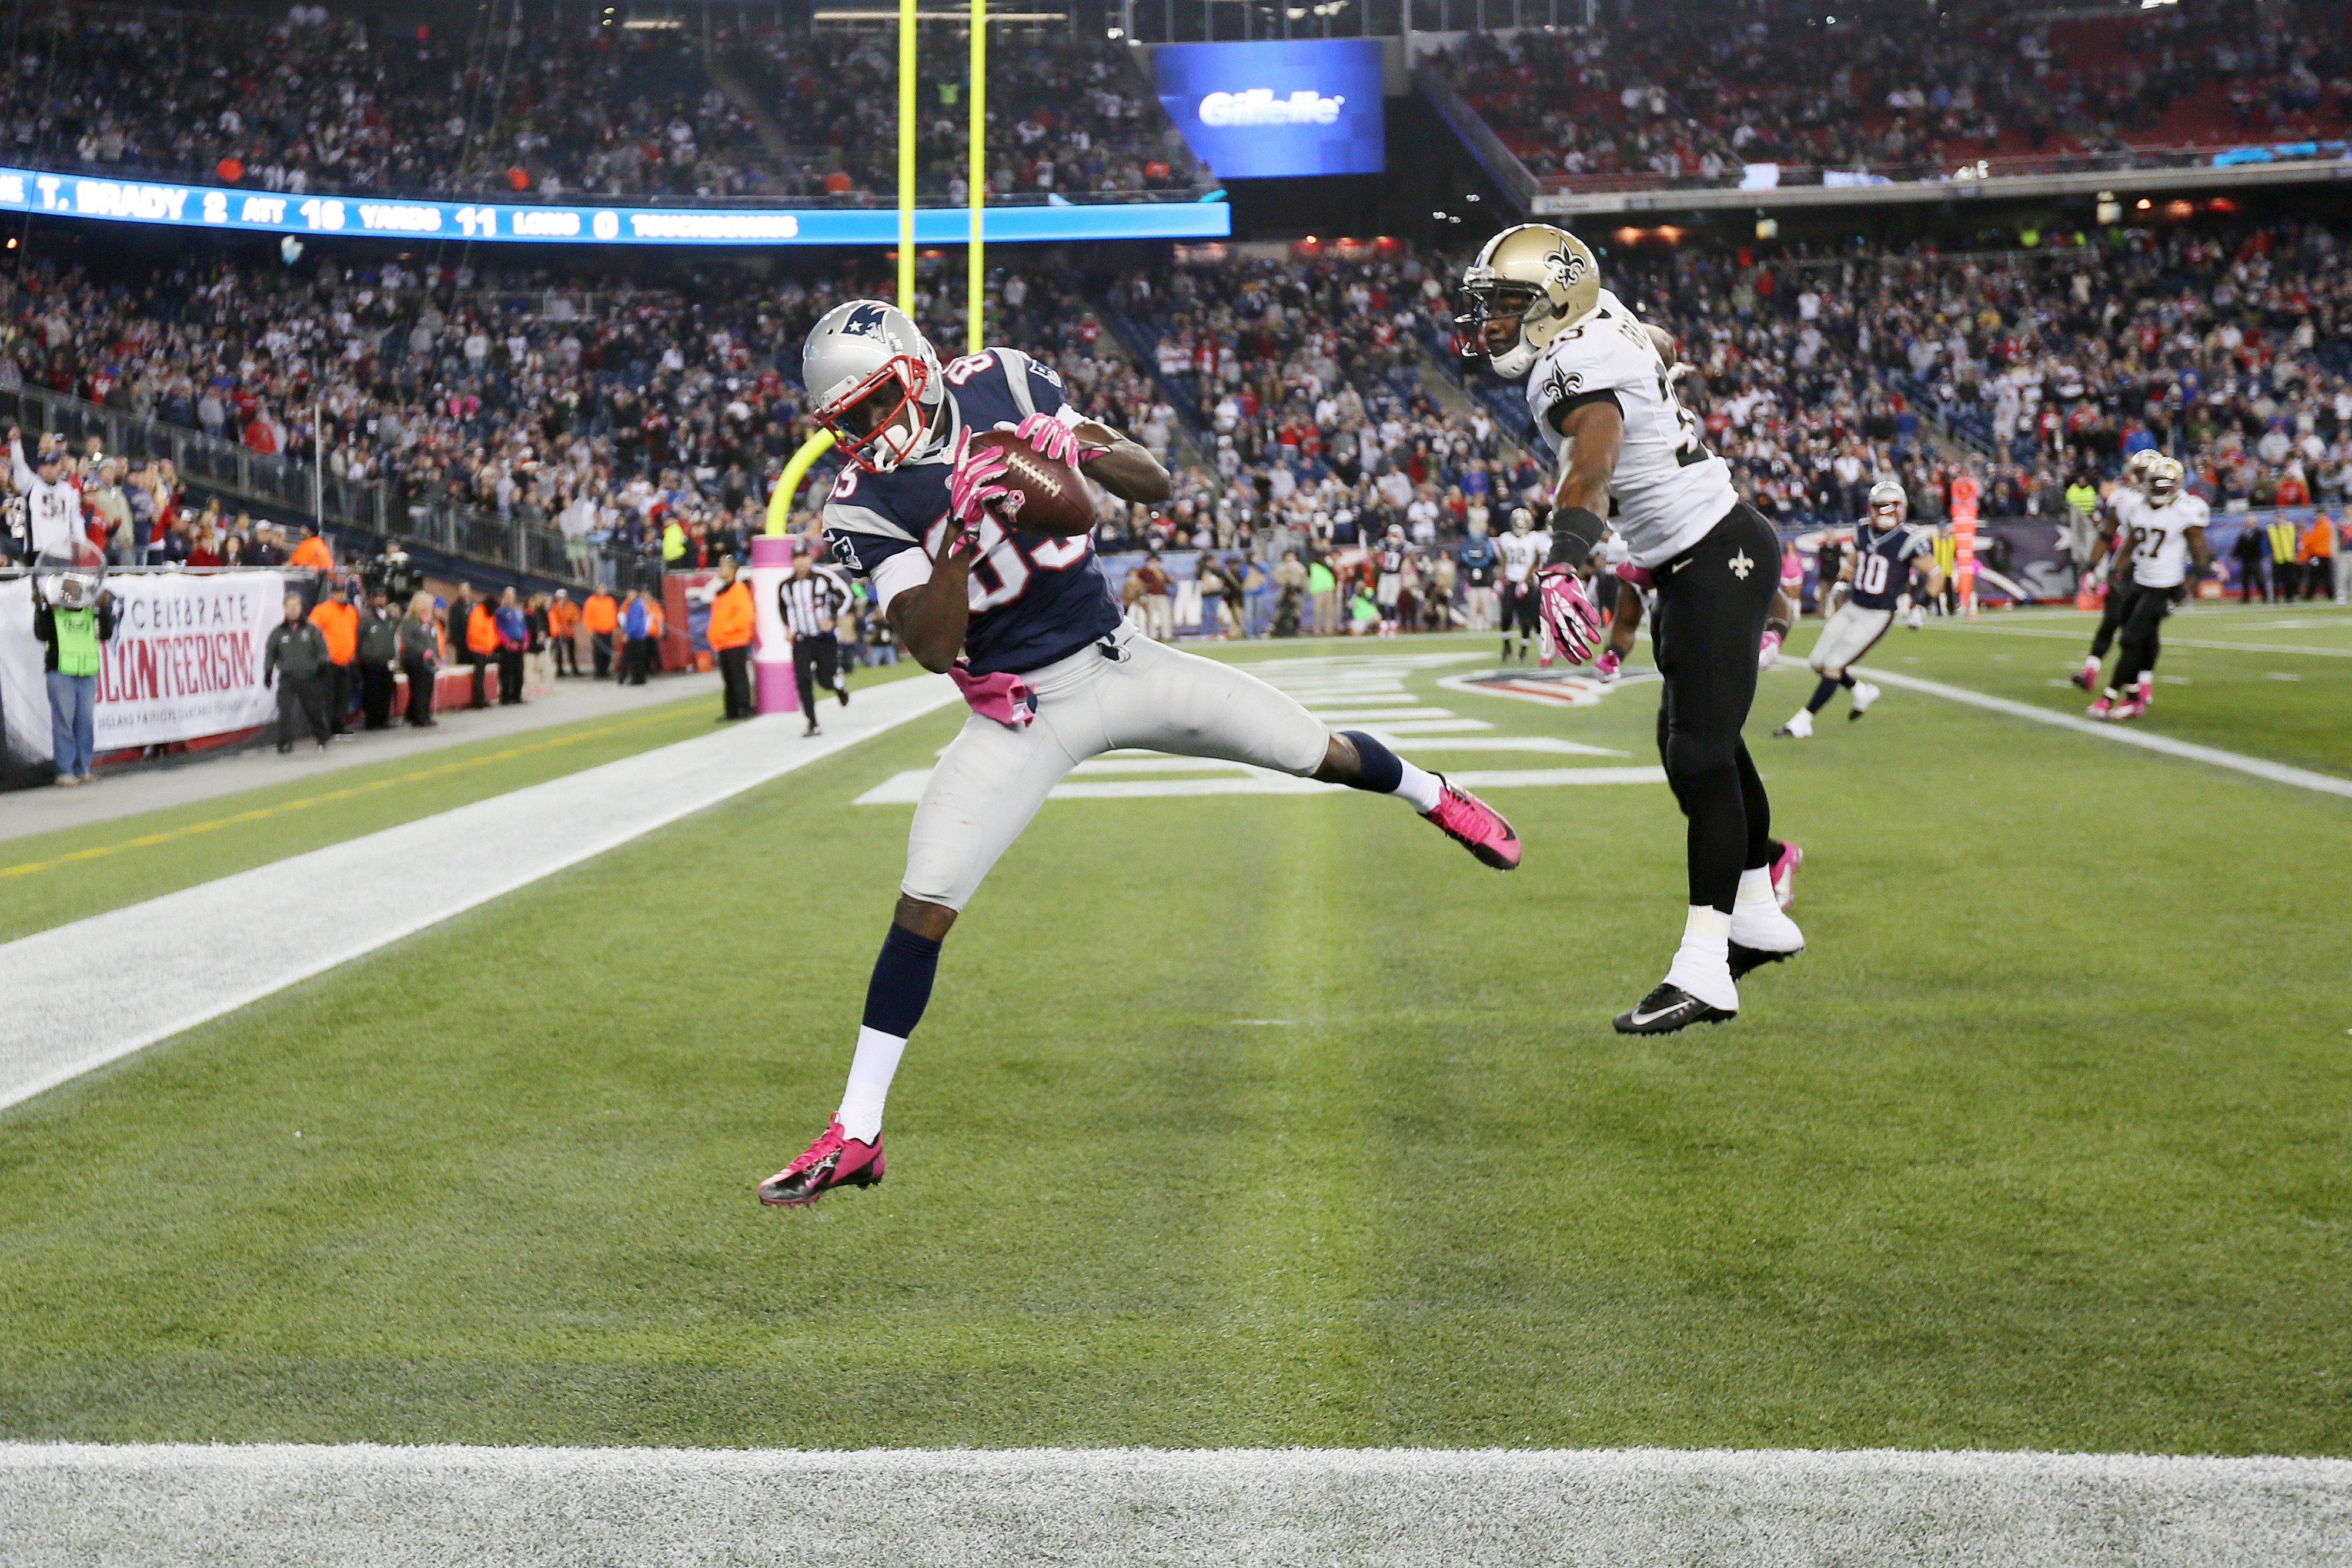 Patriots announcers lose it after game-winning Kenbrell Thompkins TD